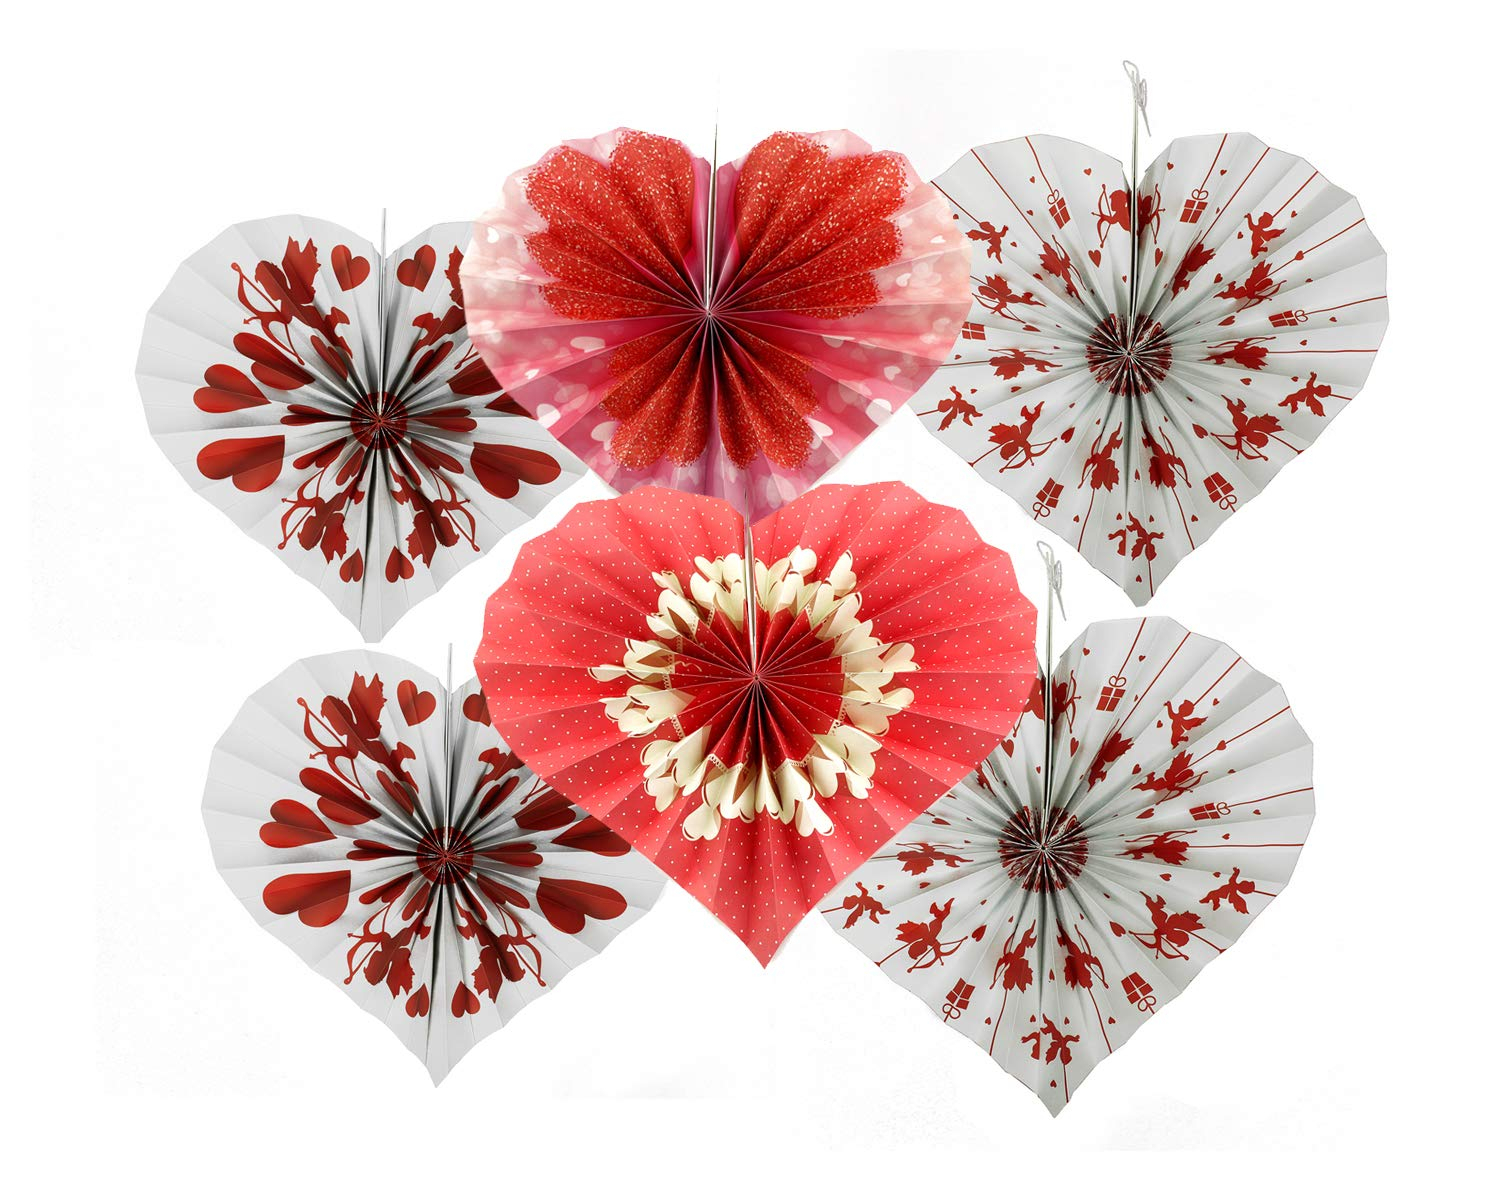 Details About 6Pc Valentines Day Red White Cupid Heart Shaped Hanging Fans  Party Decorations In 2 Piece Heart Shaped Fan Wall Decor Sets (Photo 28 of 30)